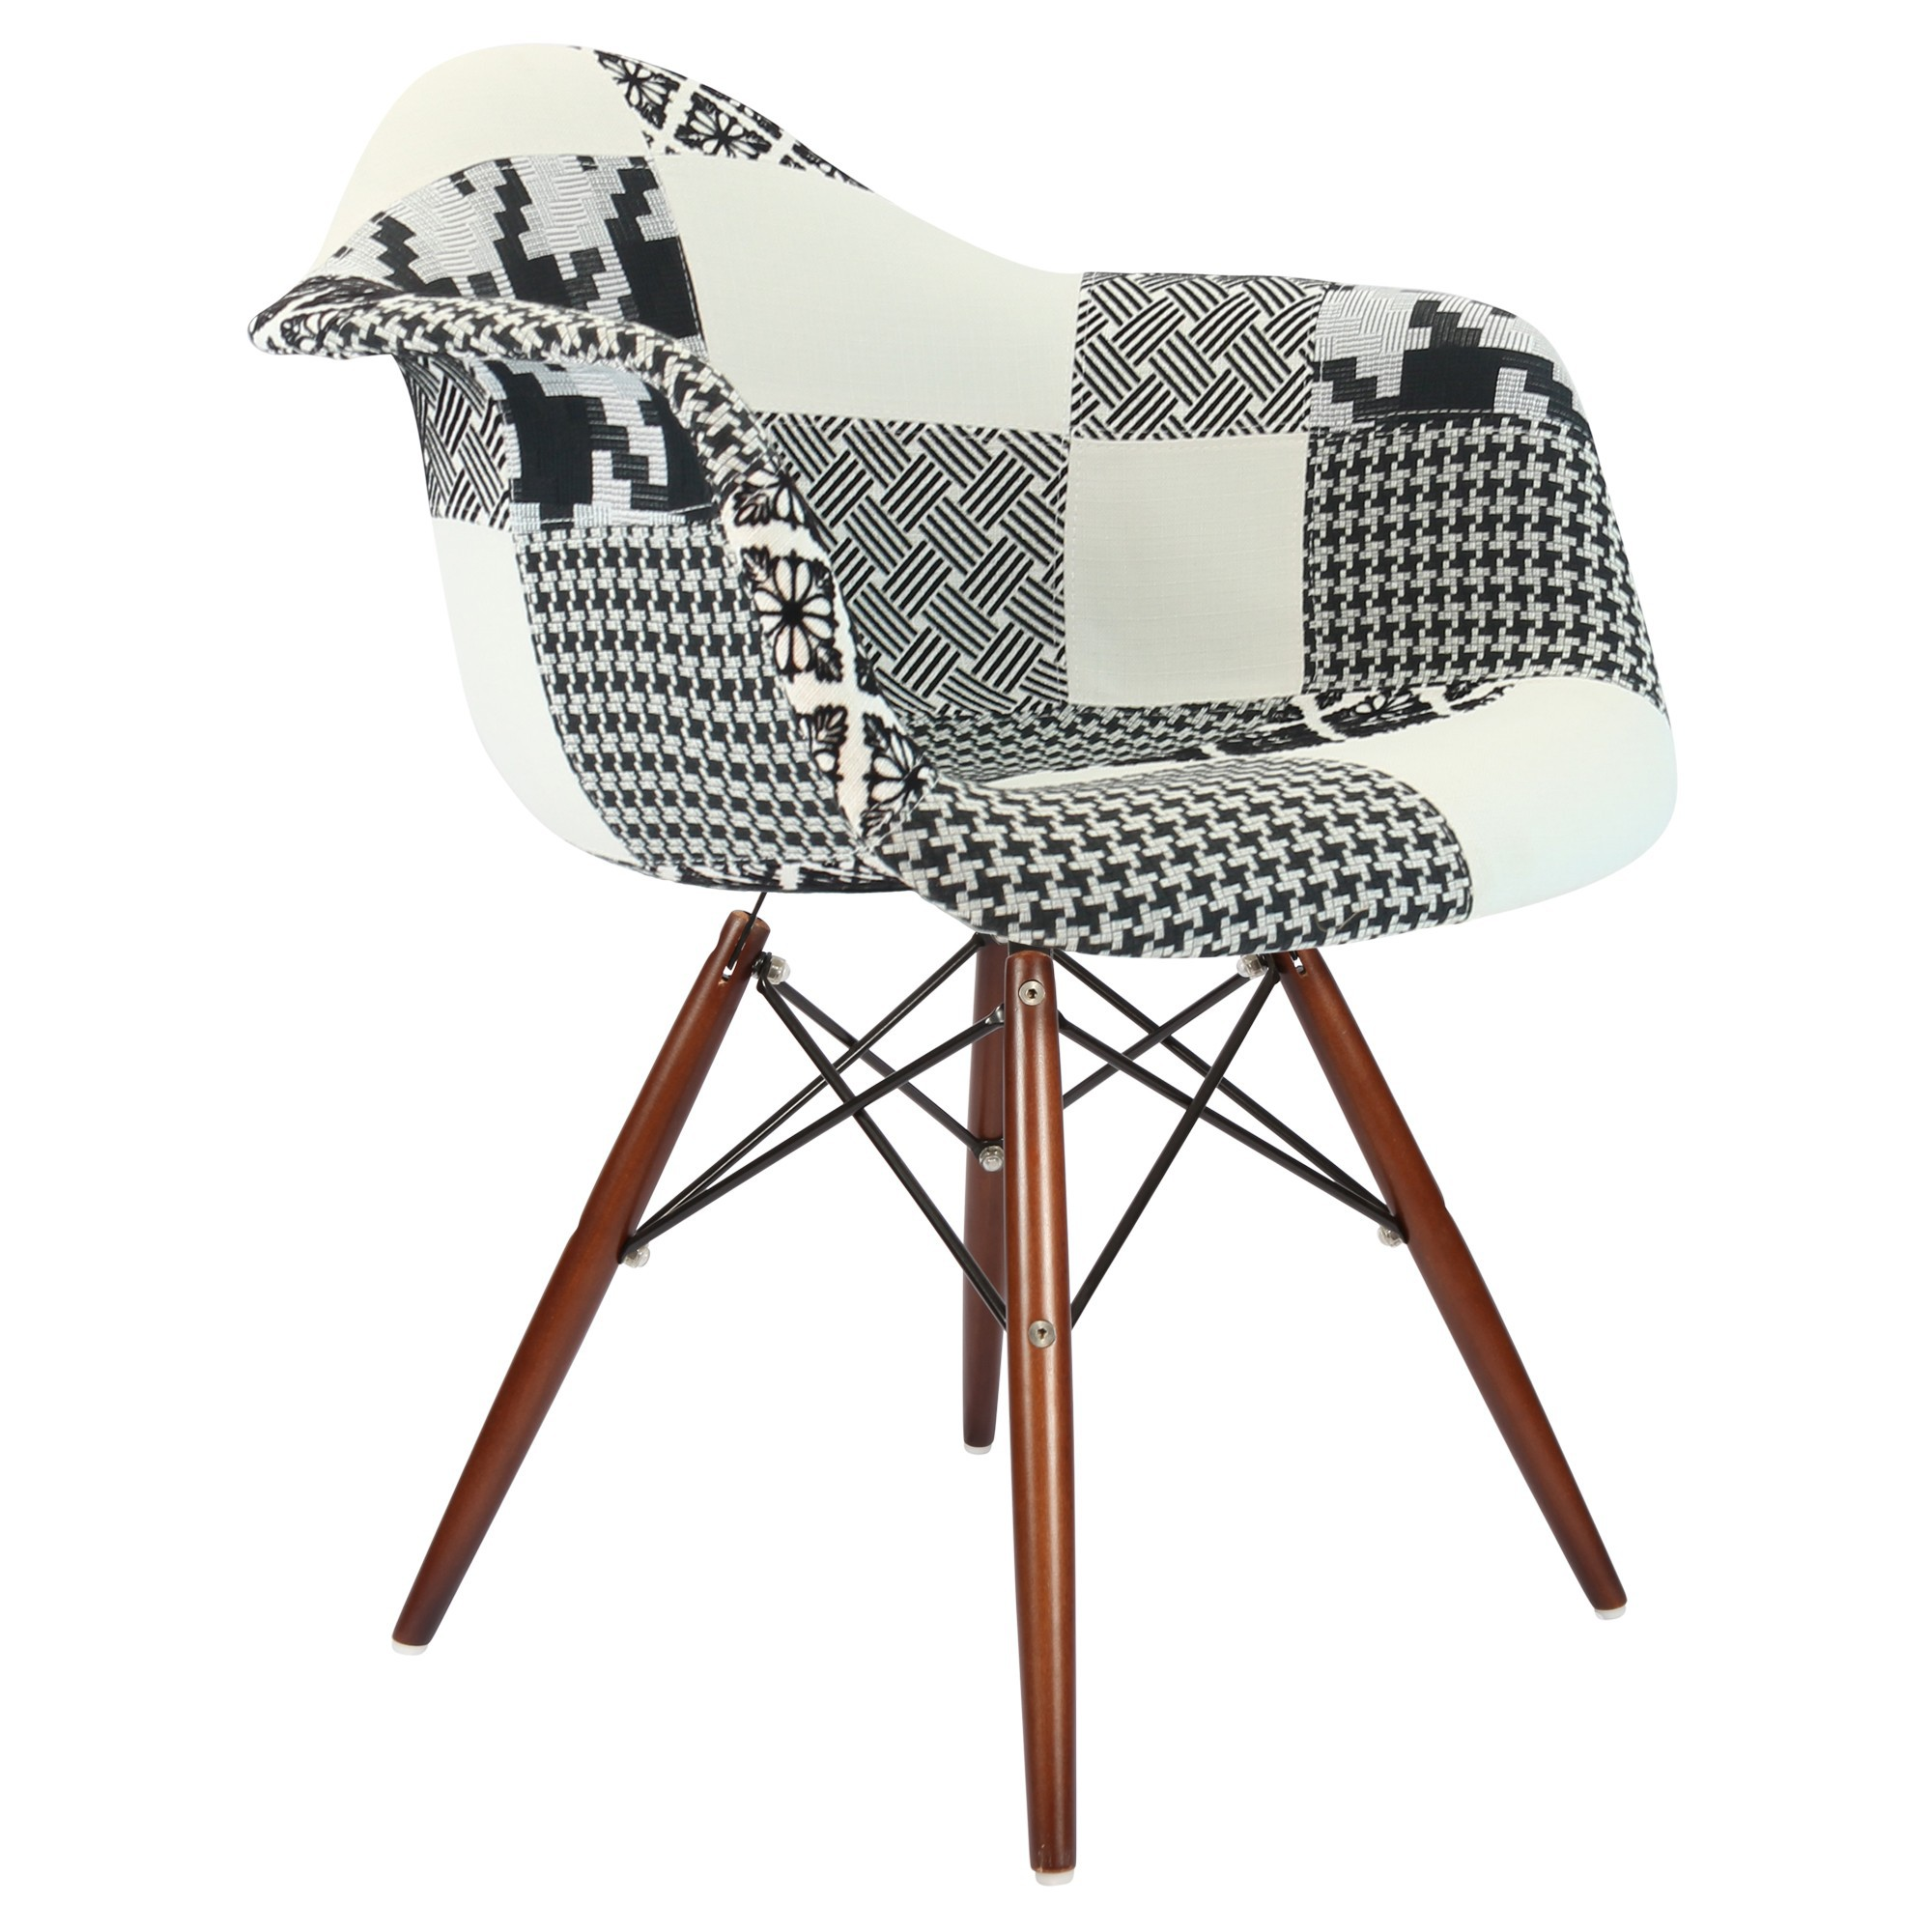 chaise patchwork loading zoom - Chaise Patchwork Eames